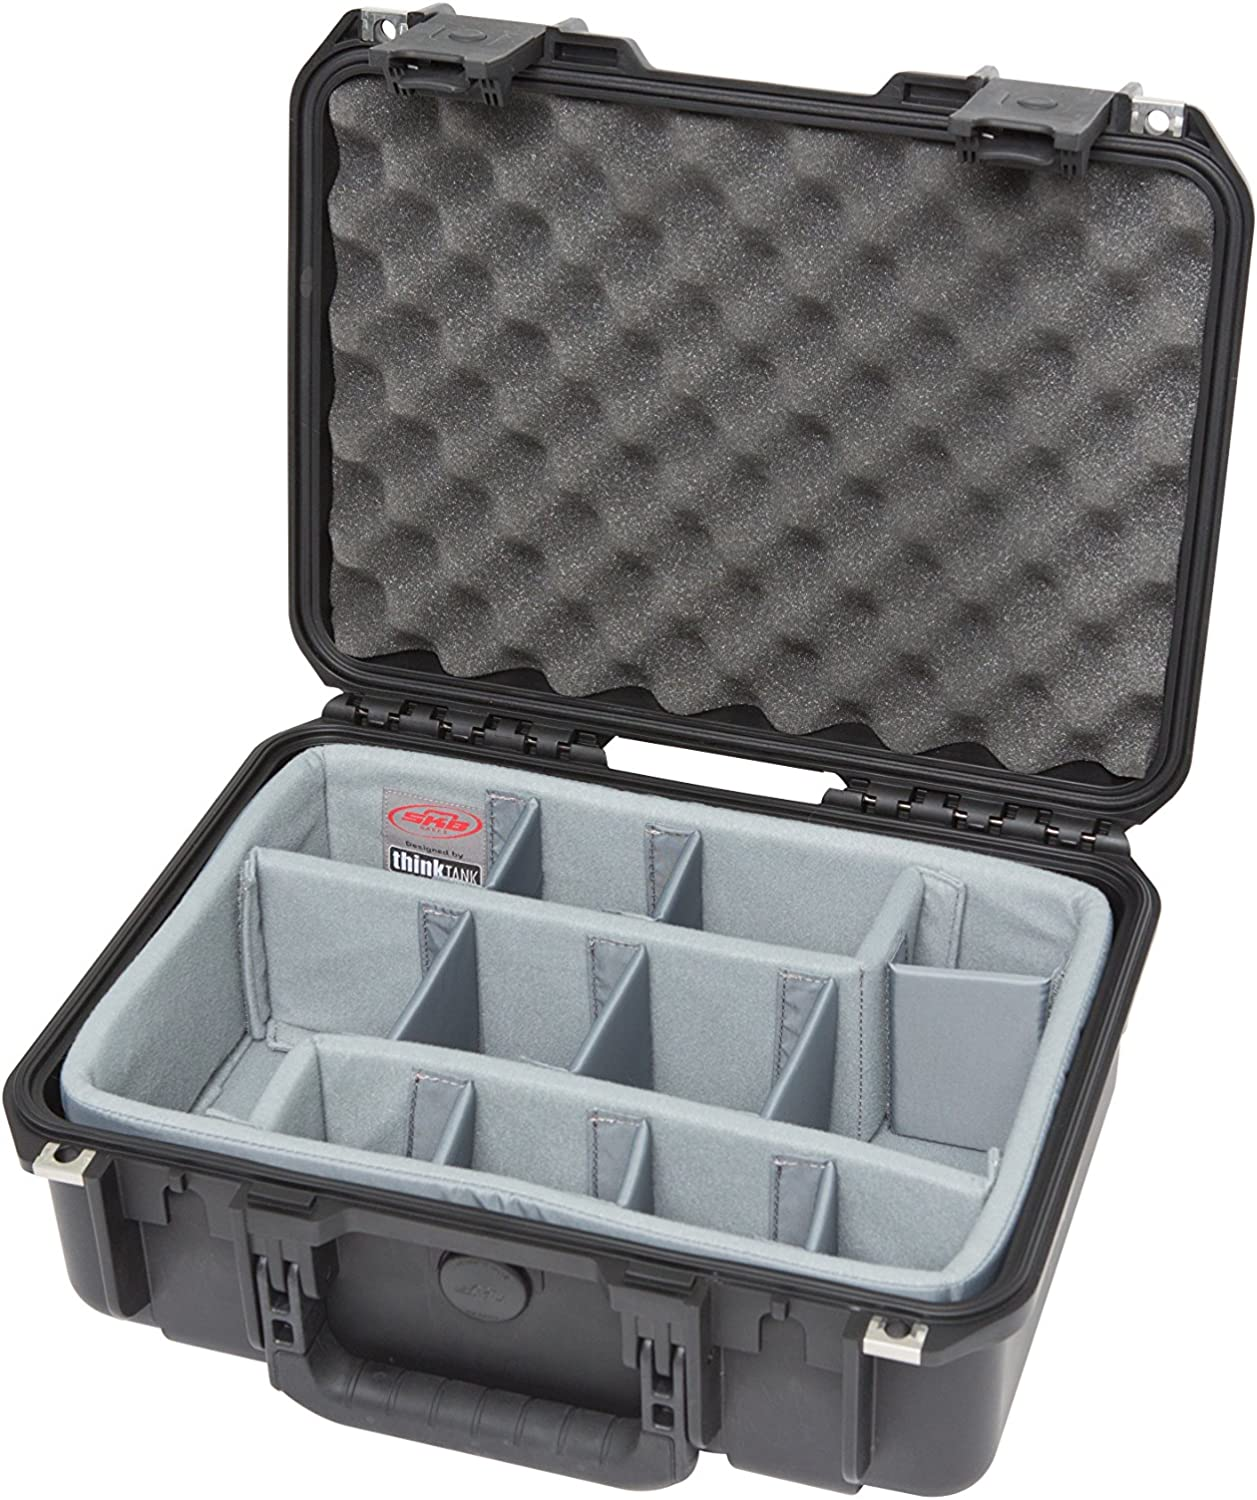 SKB Cases iSeries 1510-6 Case with Think Tank Designed Photo Dividers Black 3i-1510-6DT